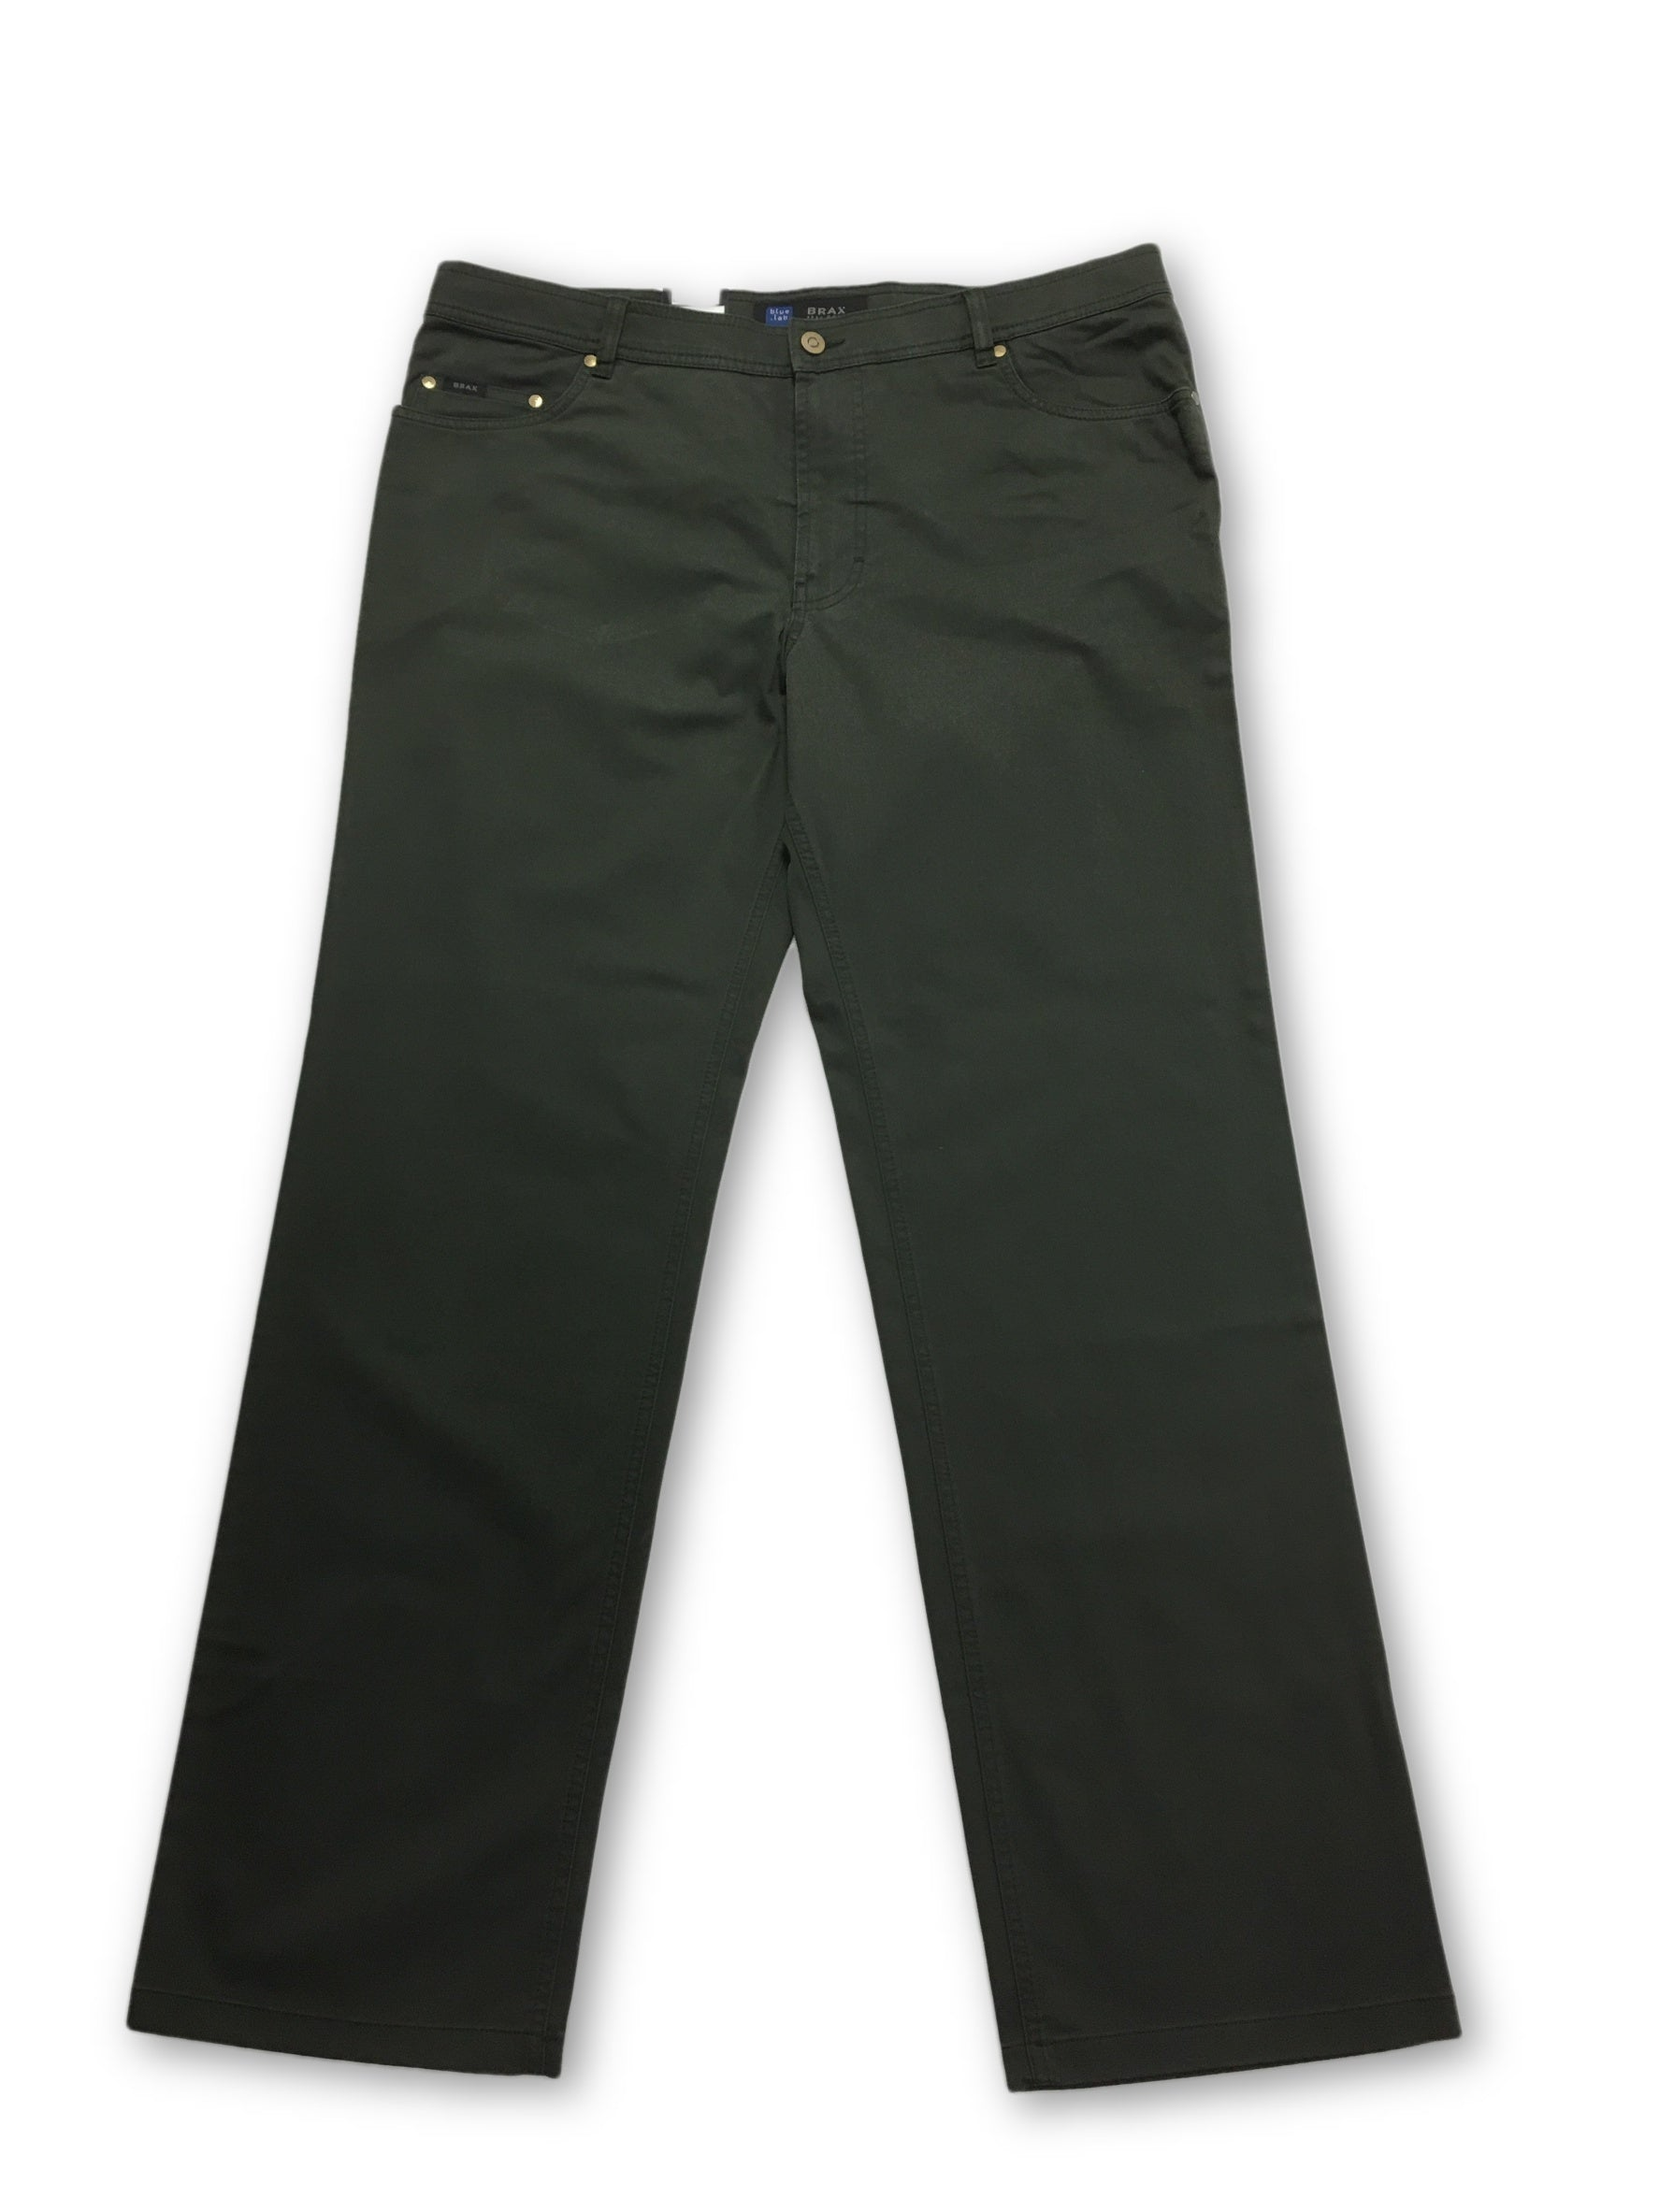 exclusive range wholesale price best prices Brax Blue Lab jeans in green | Big and Tall – khakisurfer.com